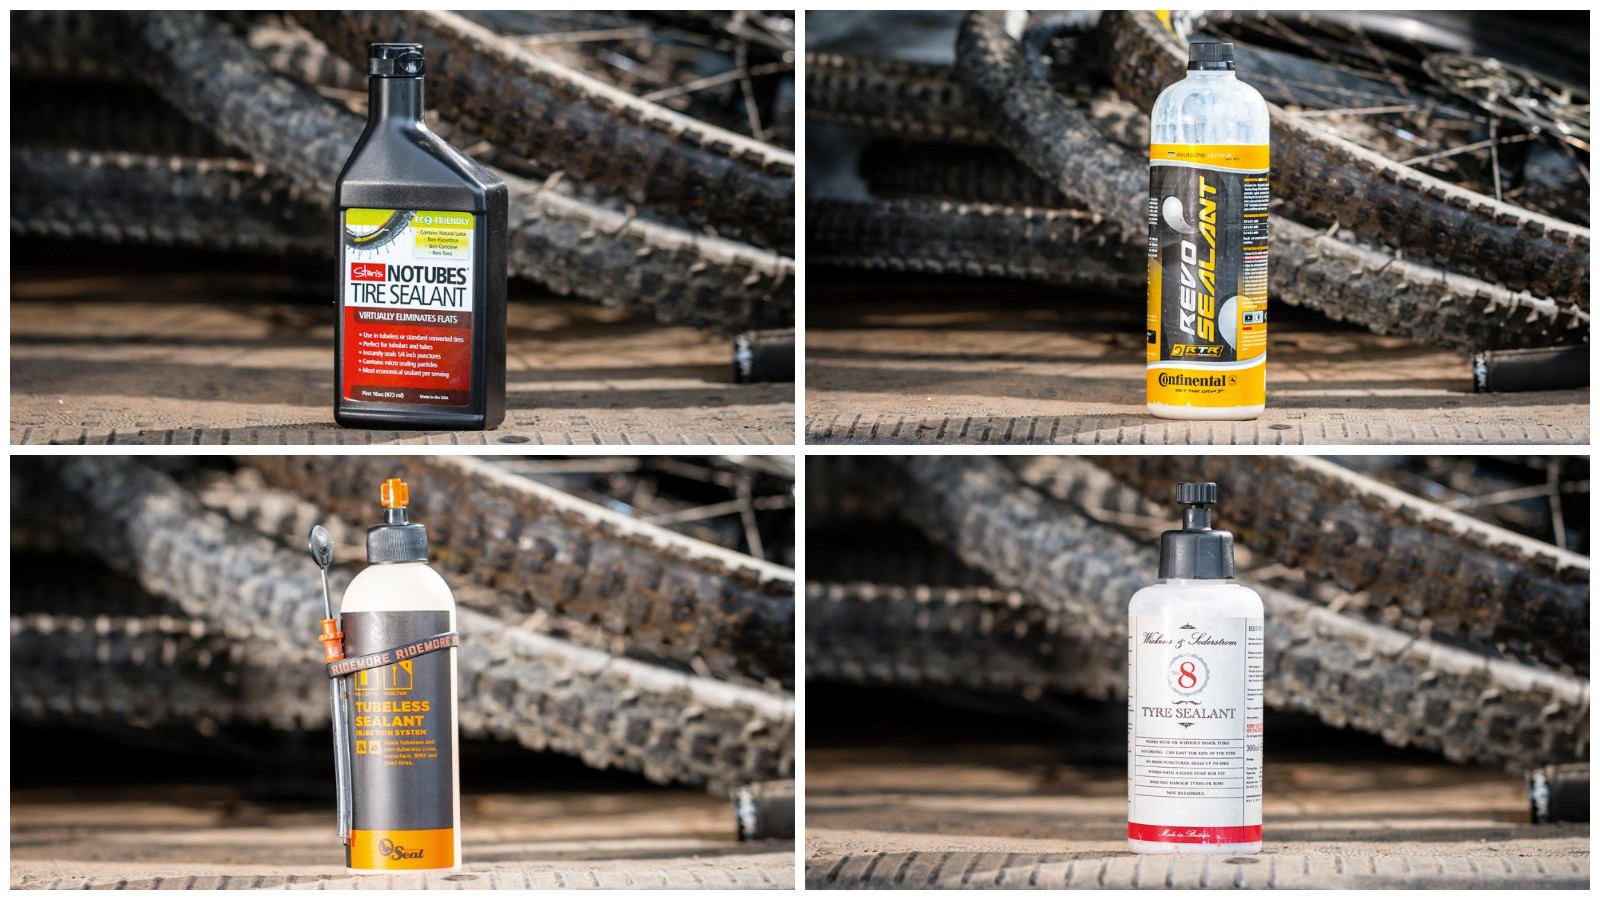 Tubeless sealant is a usually latex-based liquid that can seal small holes